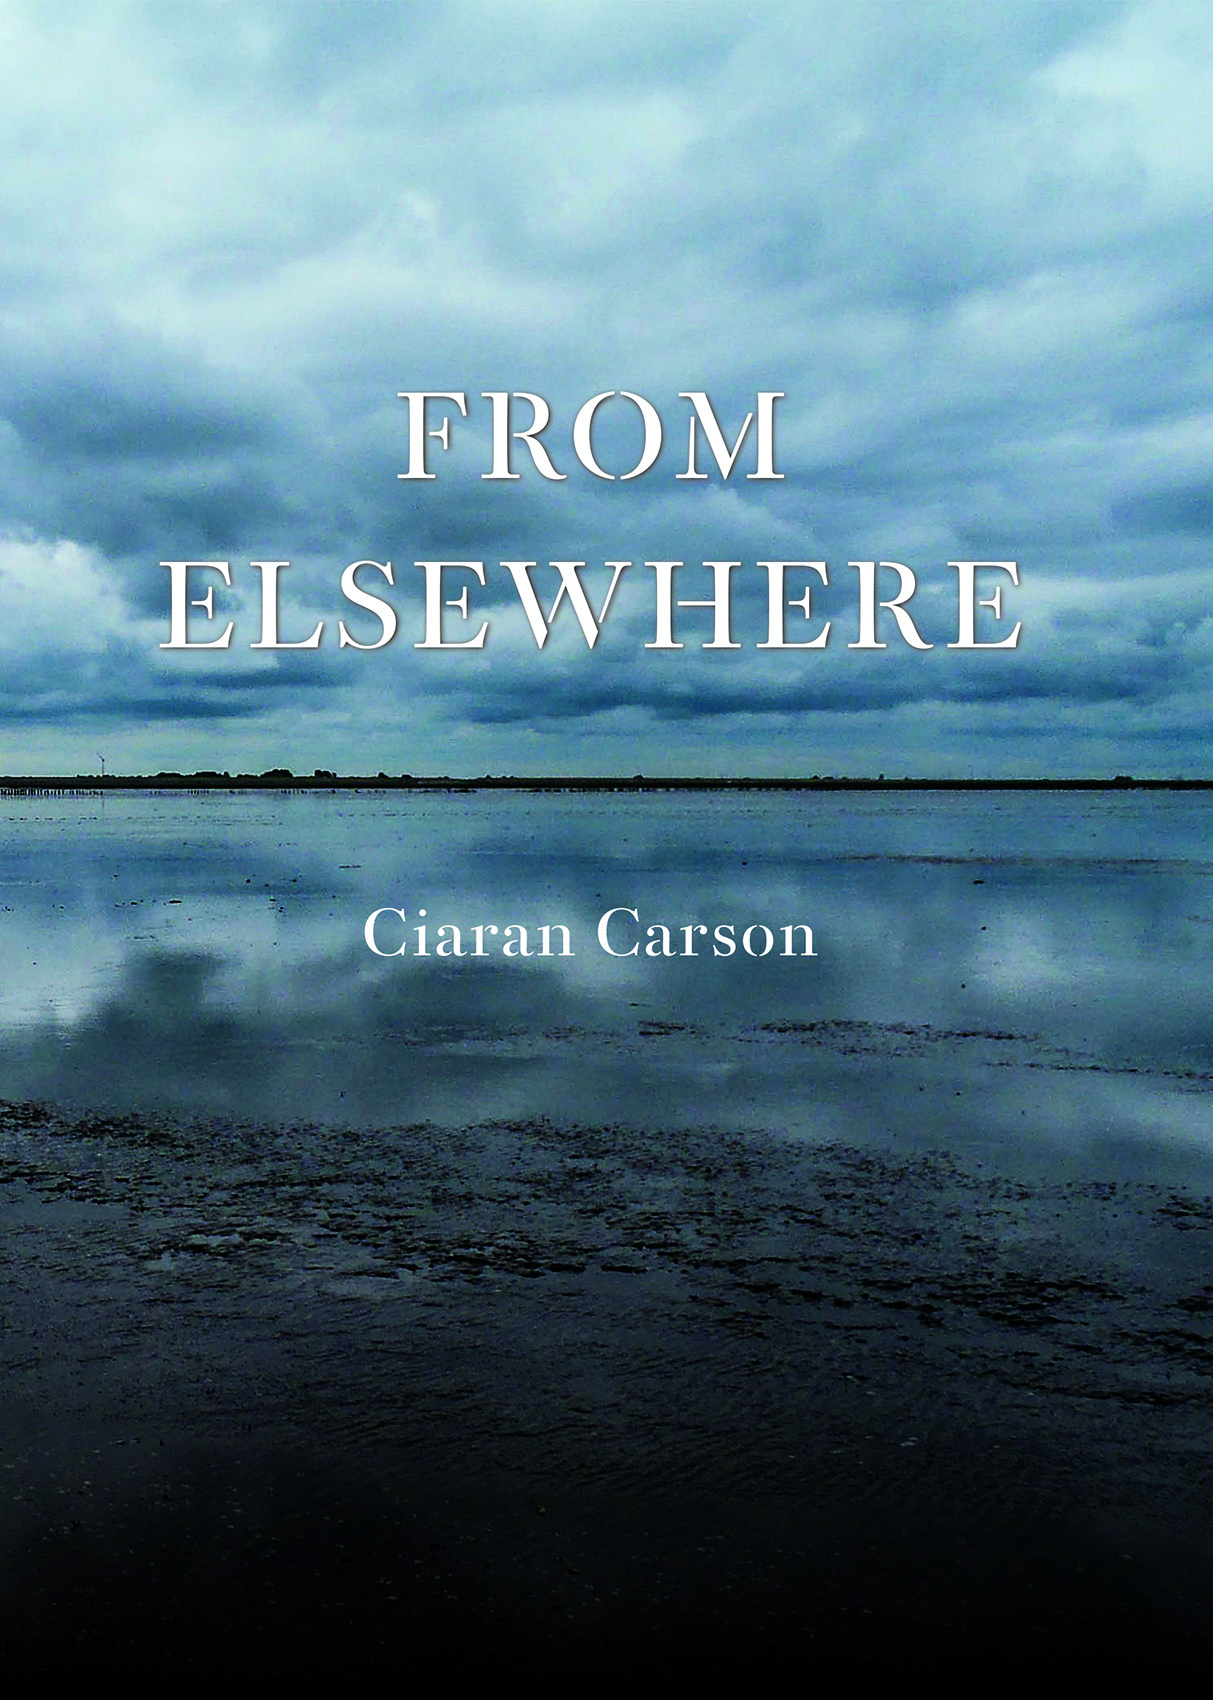 From Elsewhere by Ciaran Carson